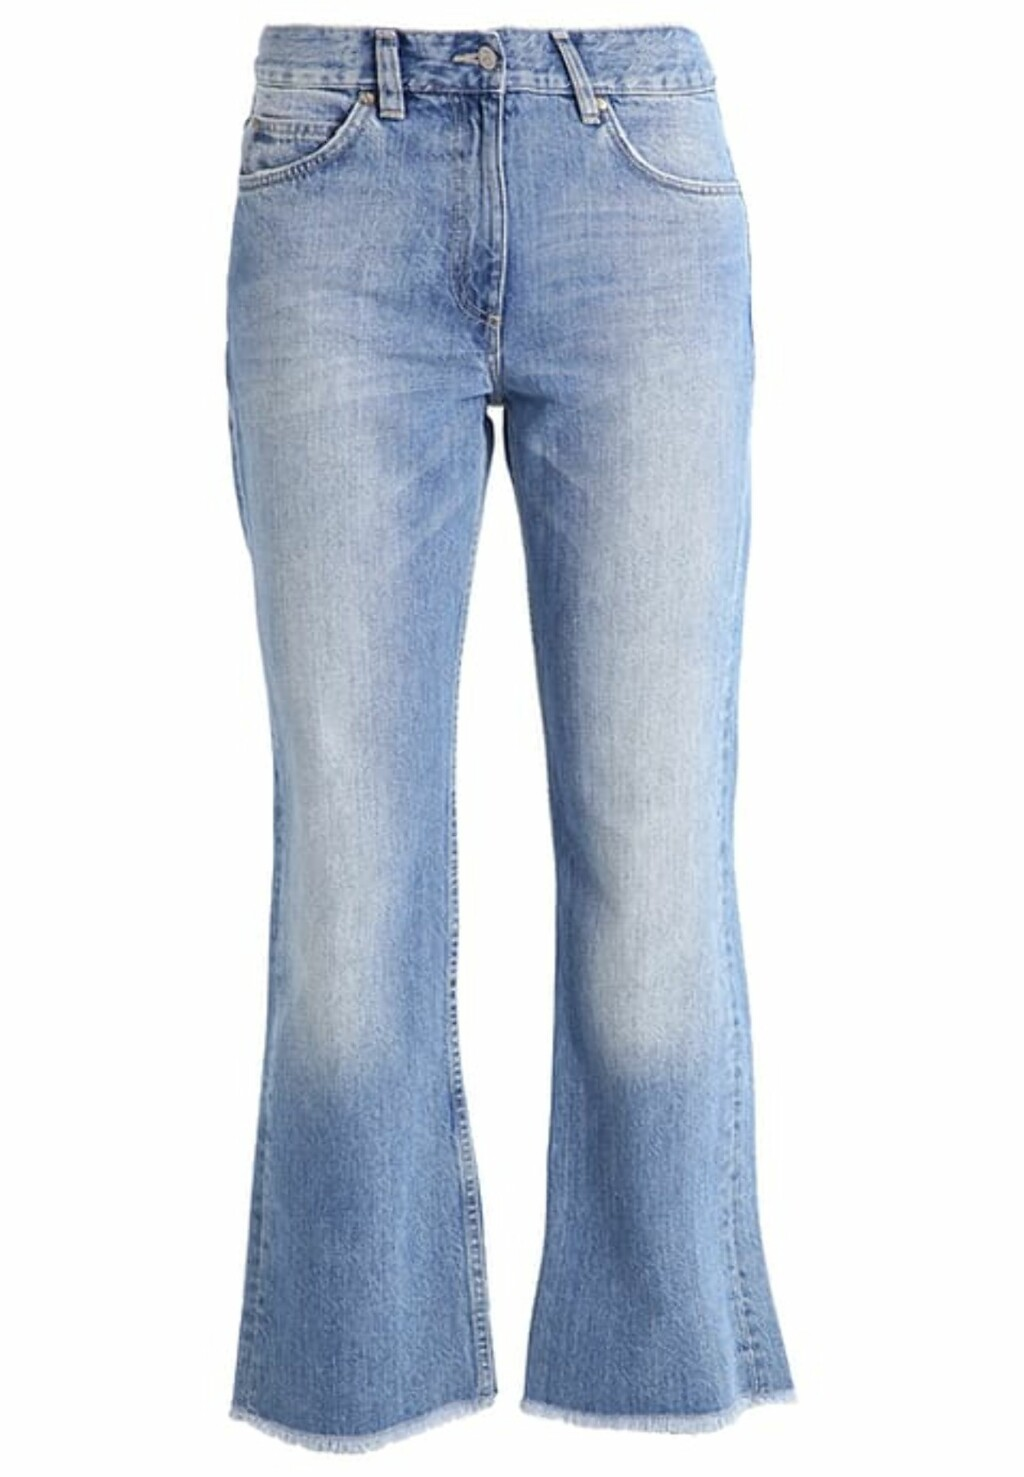 Jeans fra Hope via Zalando.no | kr 979